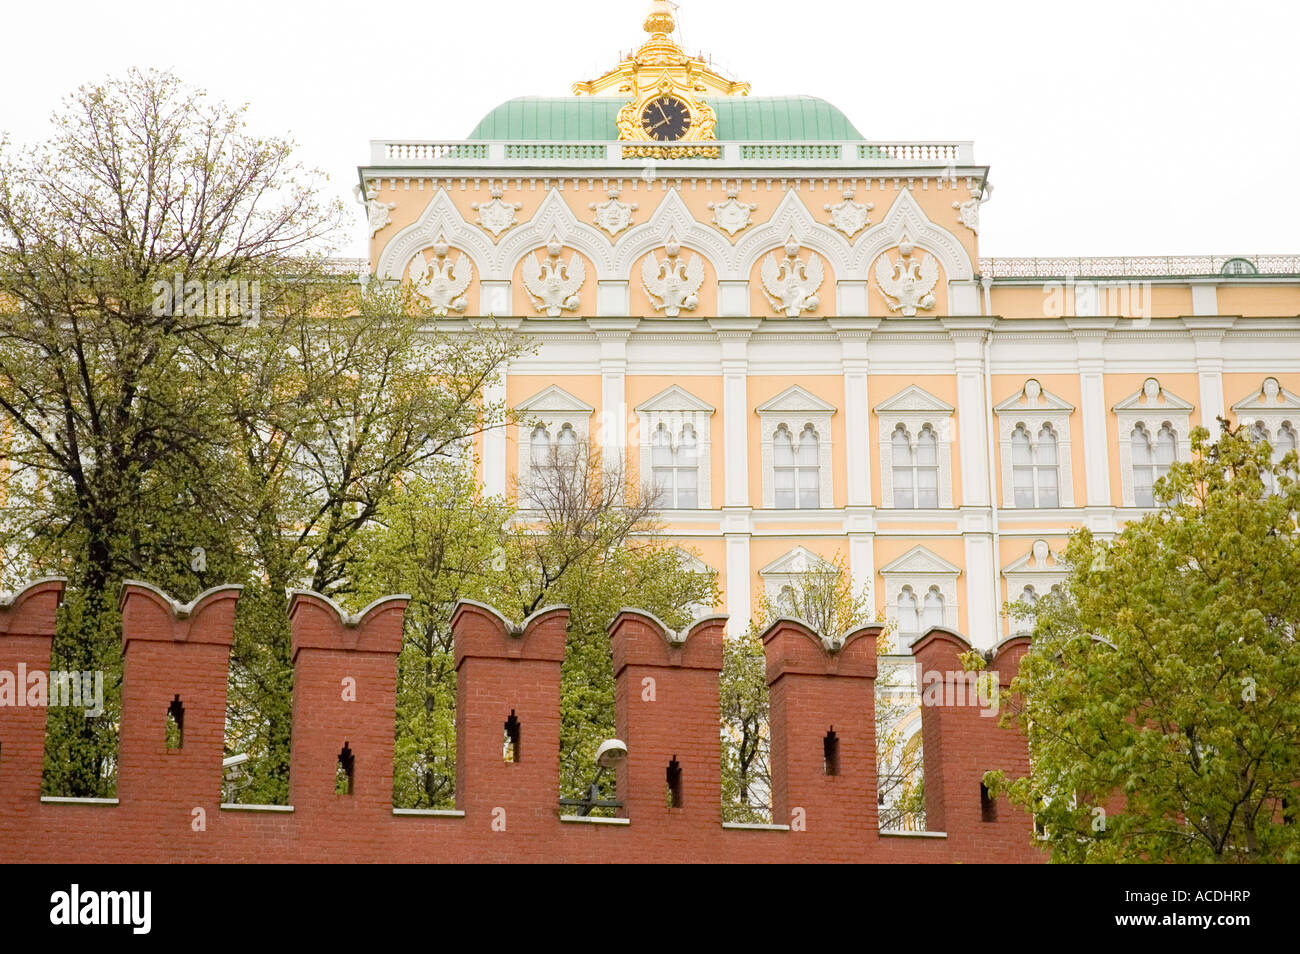 A view of the Kremlin in Moscow Russia - Stock Image